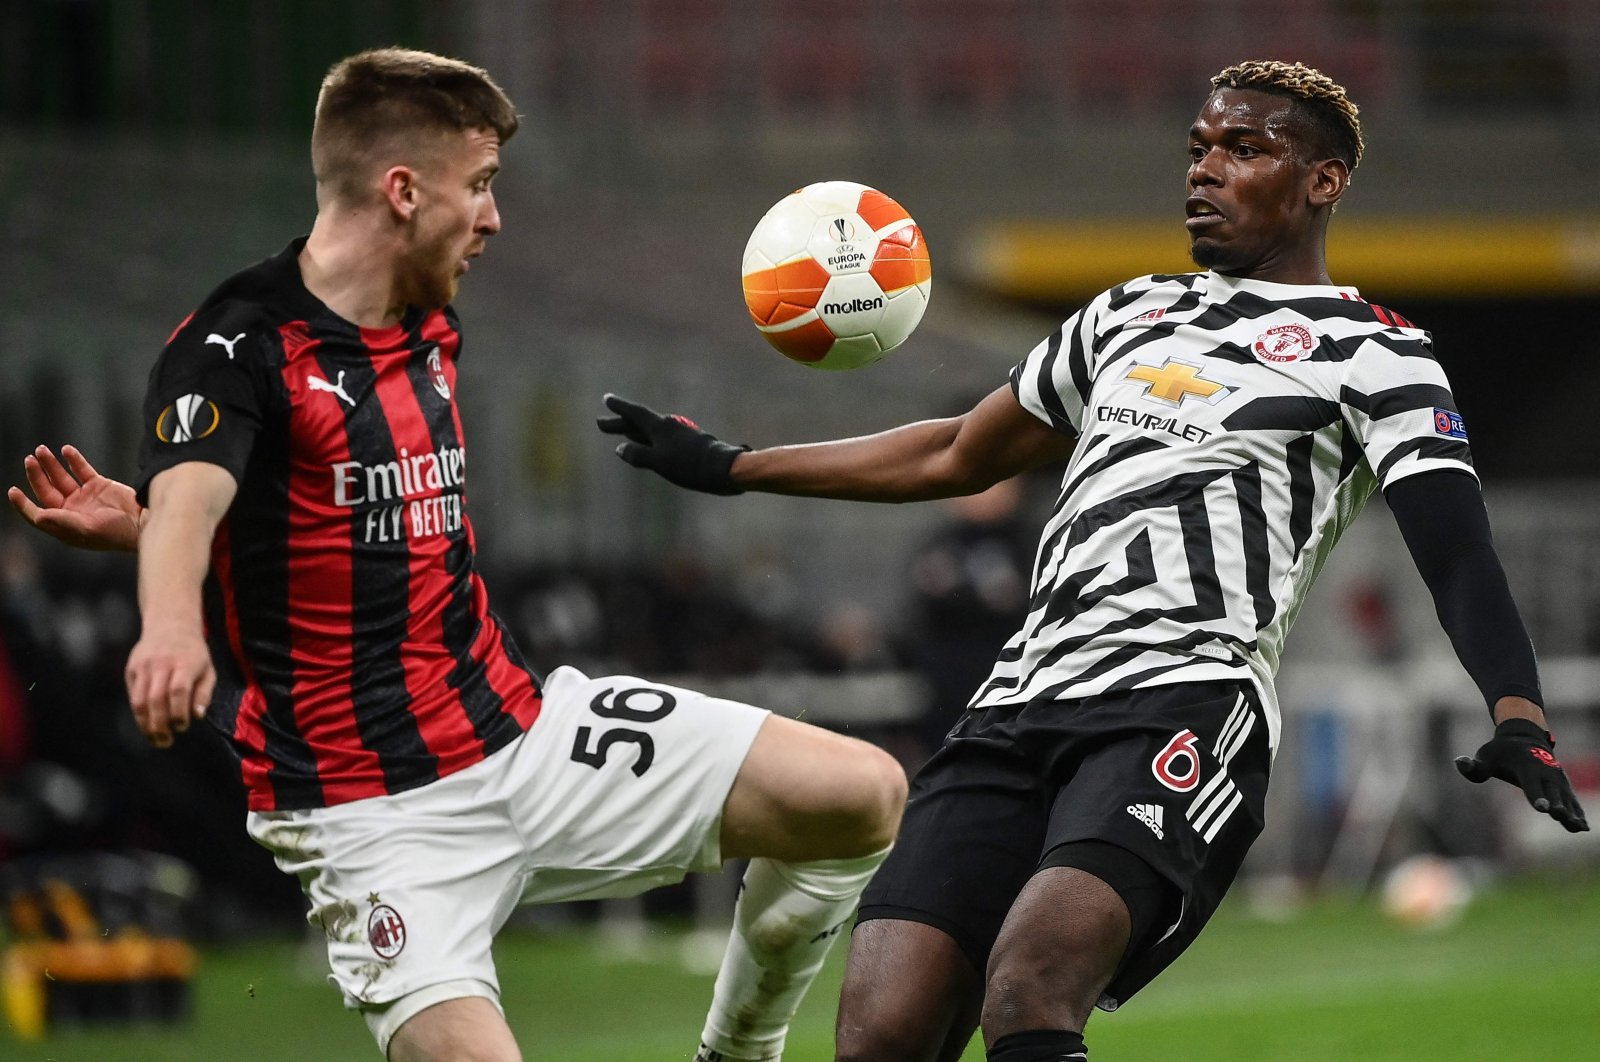 AC Milan's Belgian forward Alexis Saelemaekers (L) and Manchester United's French midfielder Paul Pogba go for the ball during a UEFA Europa League round of 16, second leg match at San Siro stadium in Milan on March 18, 2021. (AFP Photo)